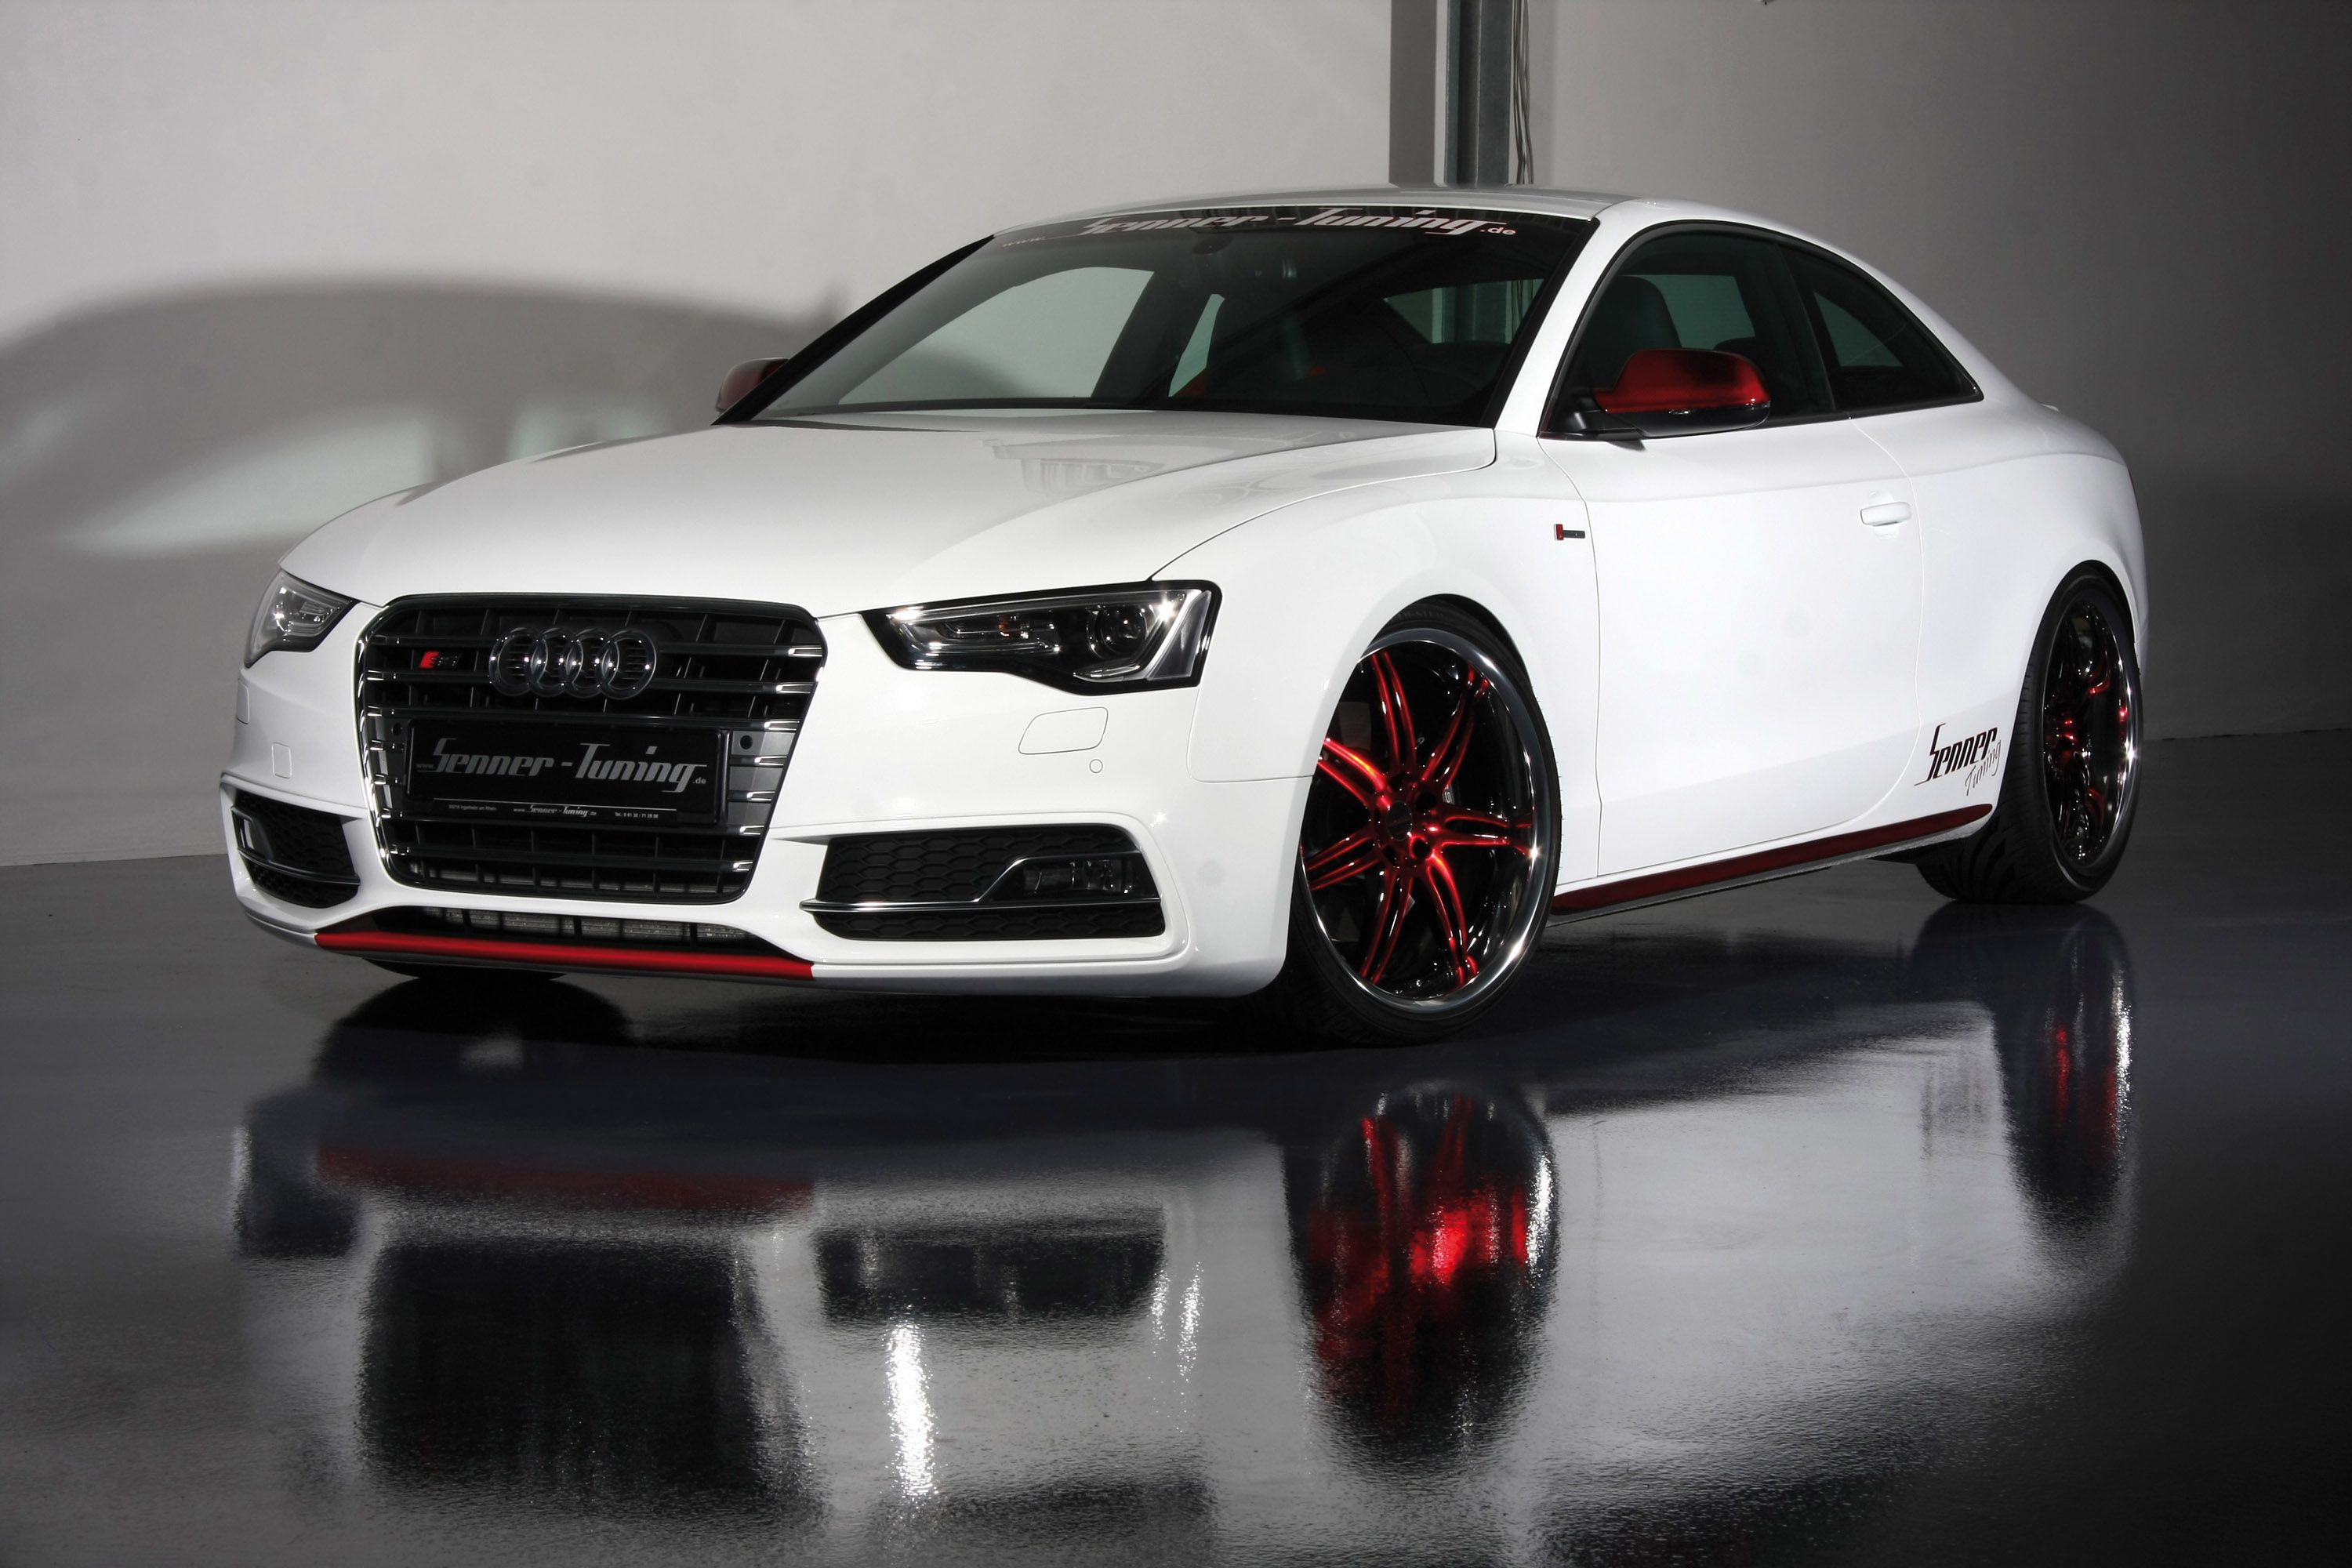 Audi A4 Coupe Custom Audi 2012 Senner Audi S5 Coupe Coupe Tuning Wallpaper